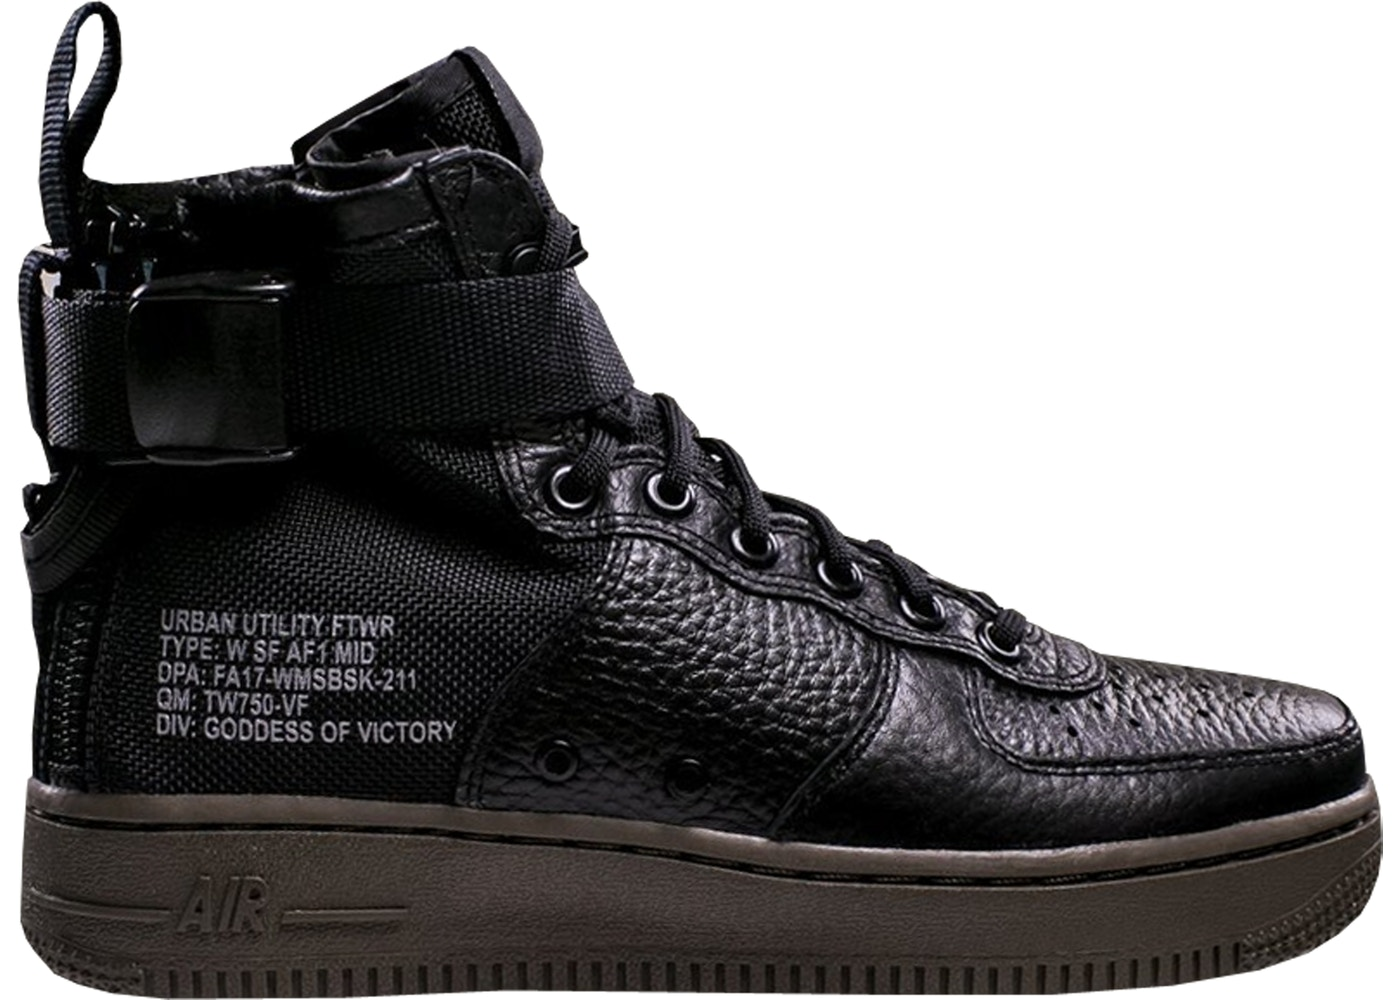 f0ecf1acf07 Nike Air Force 1 Shoes - Lowest Ask